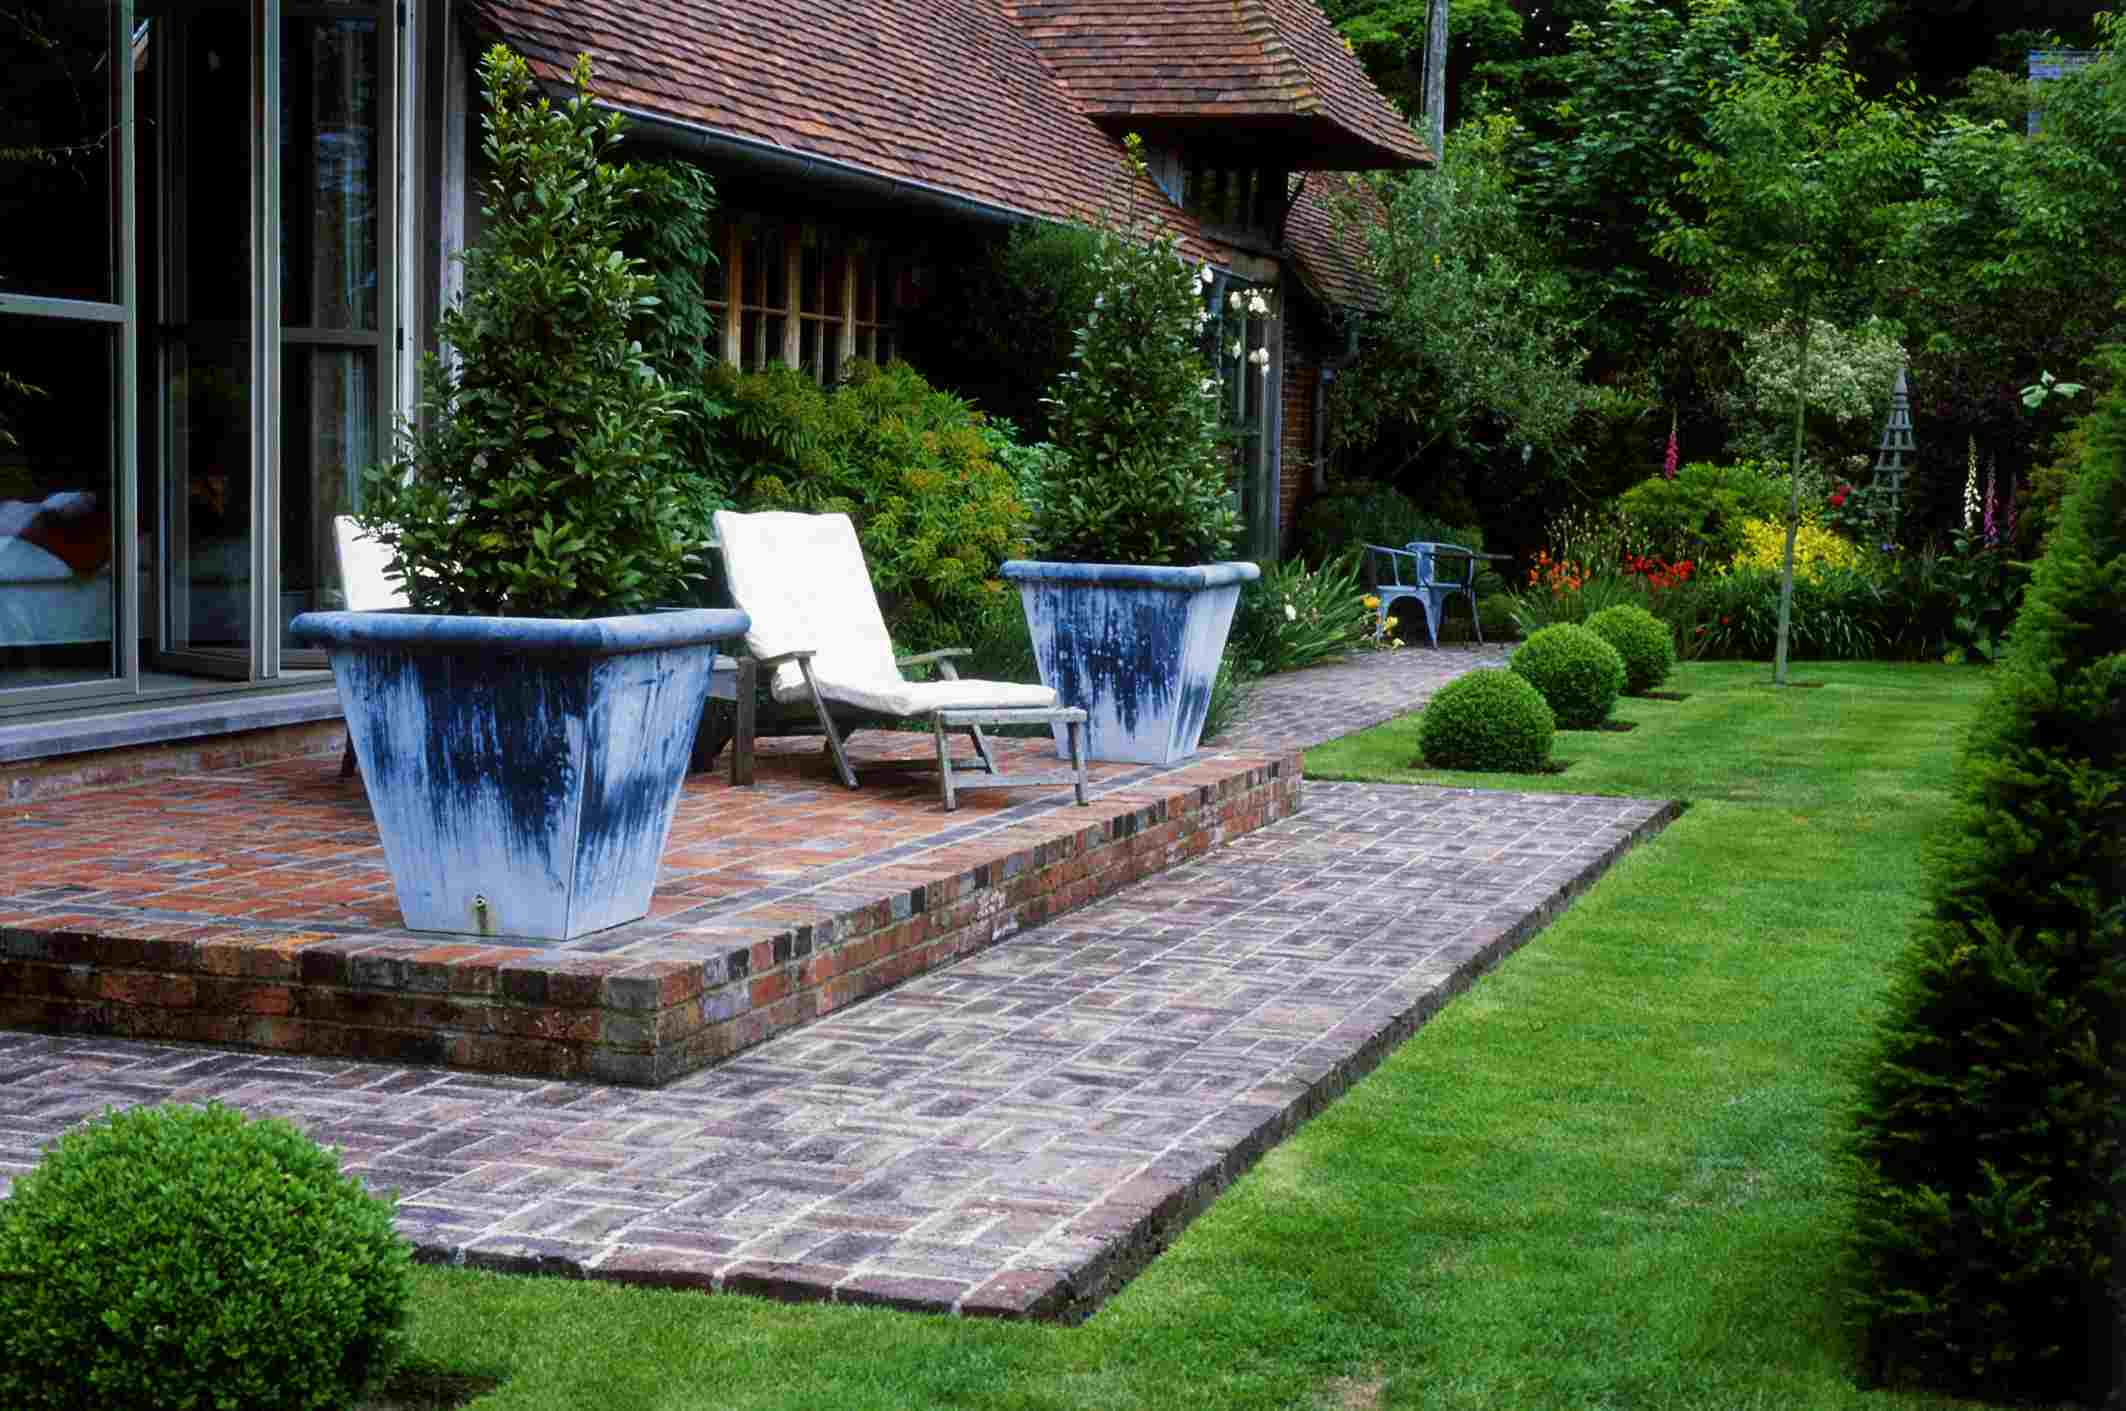 50 outdoor patio ideas that will excite inspire amaze